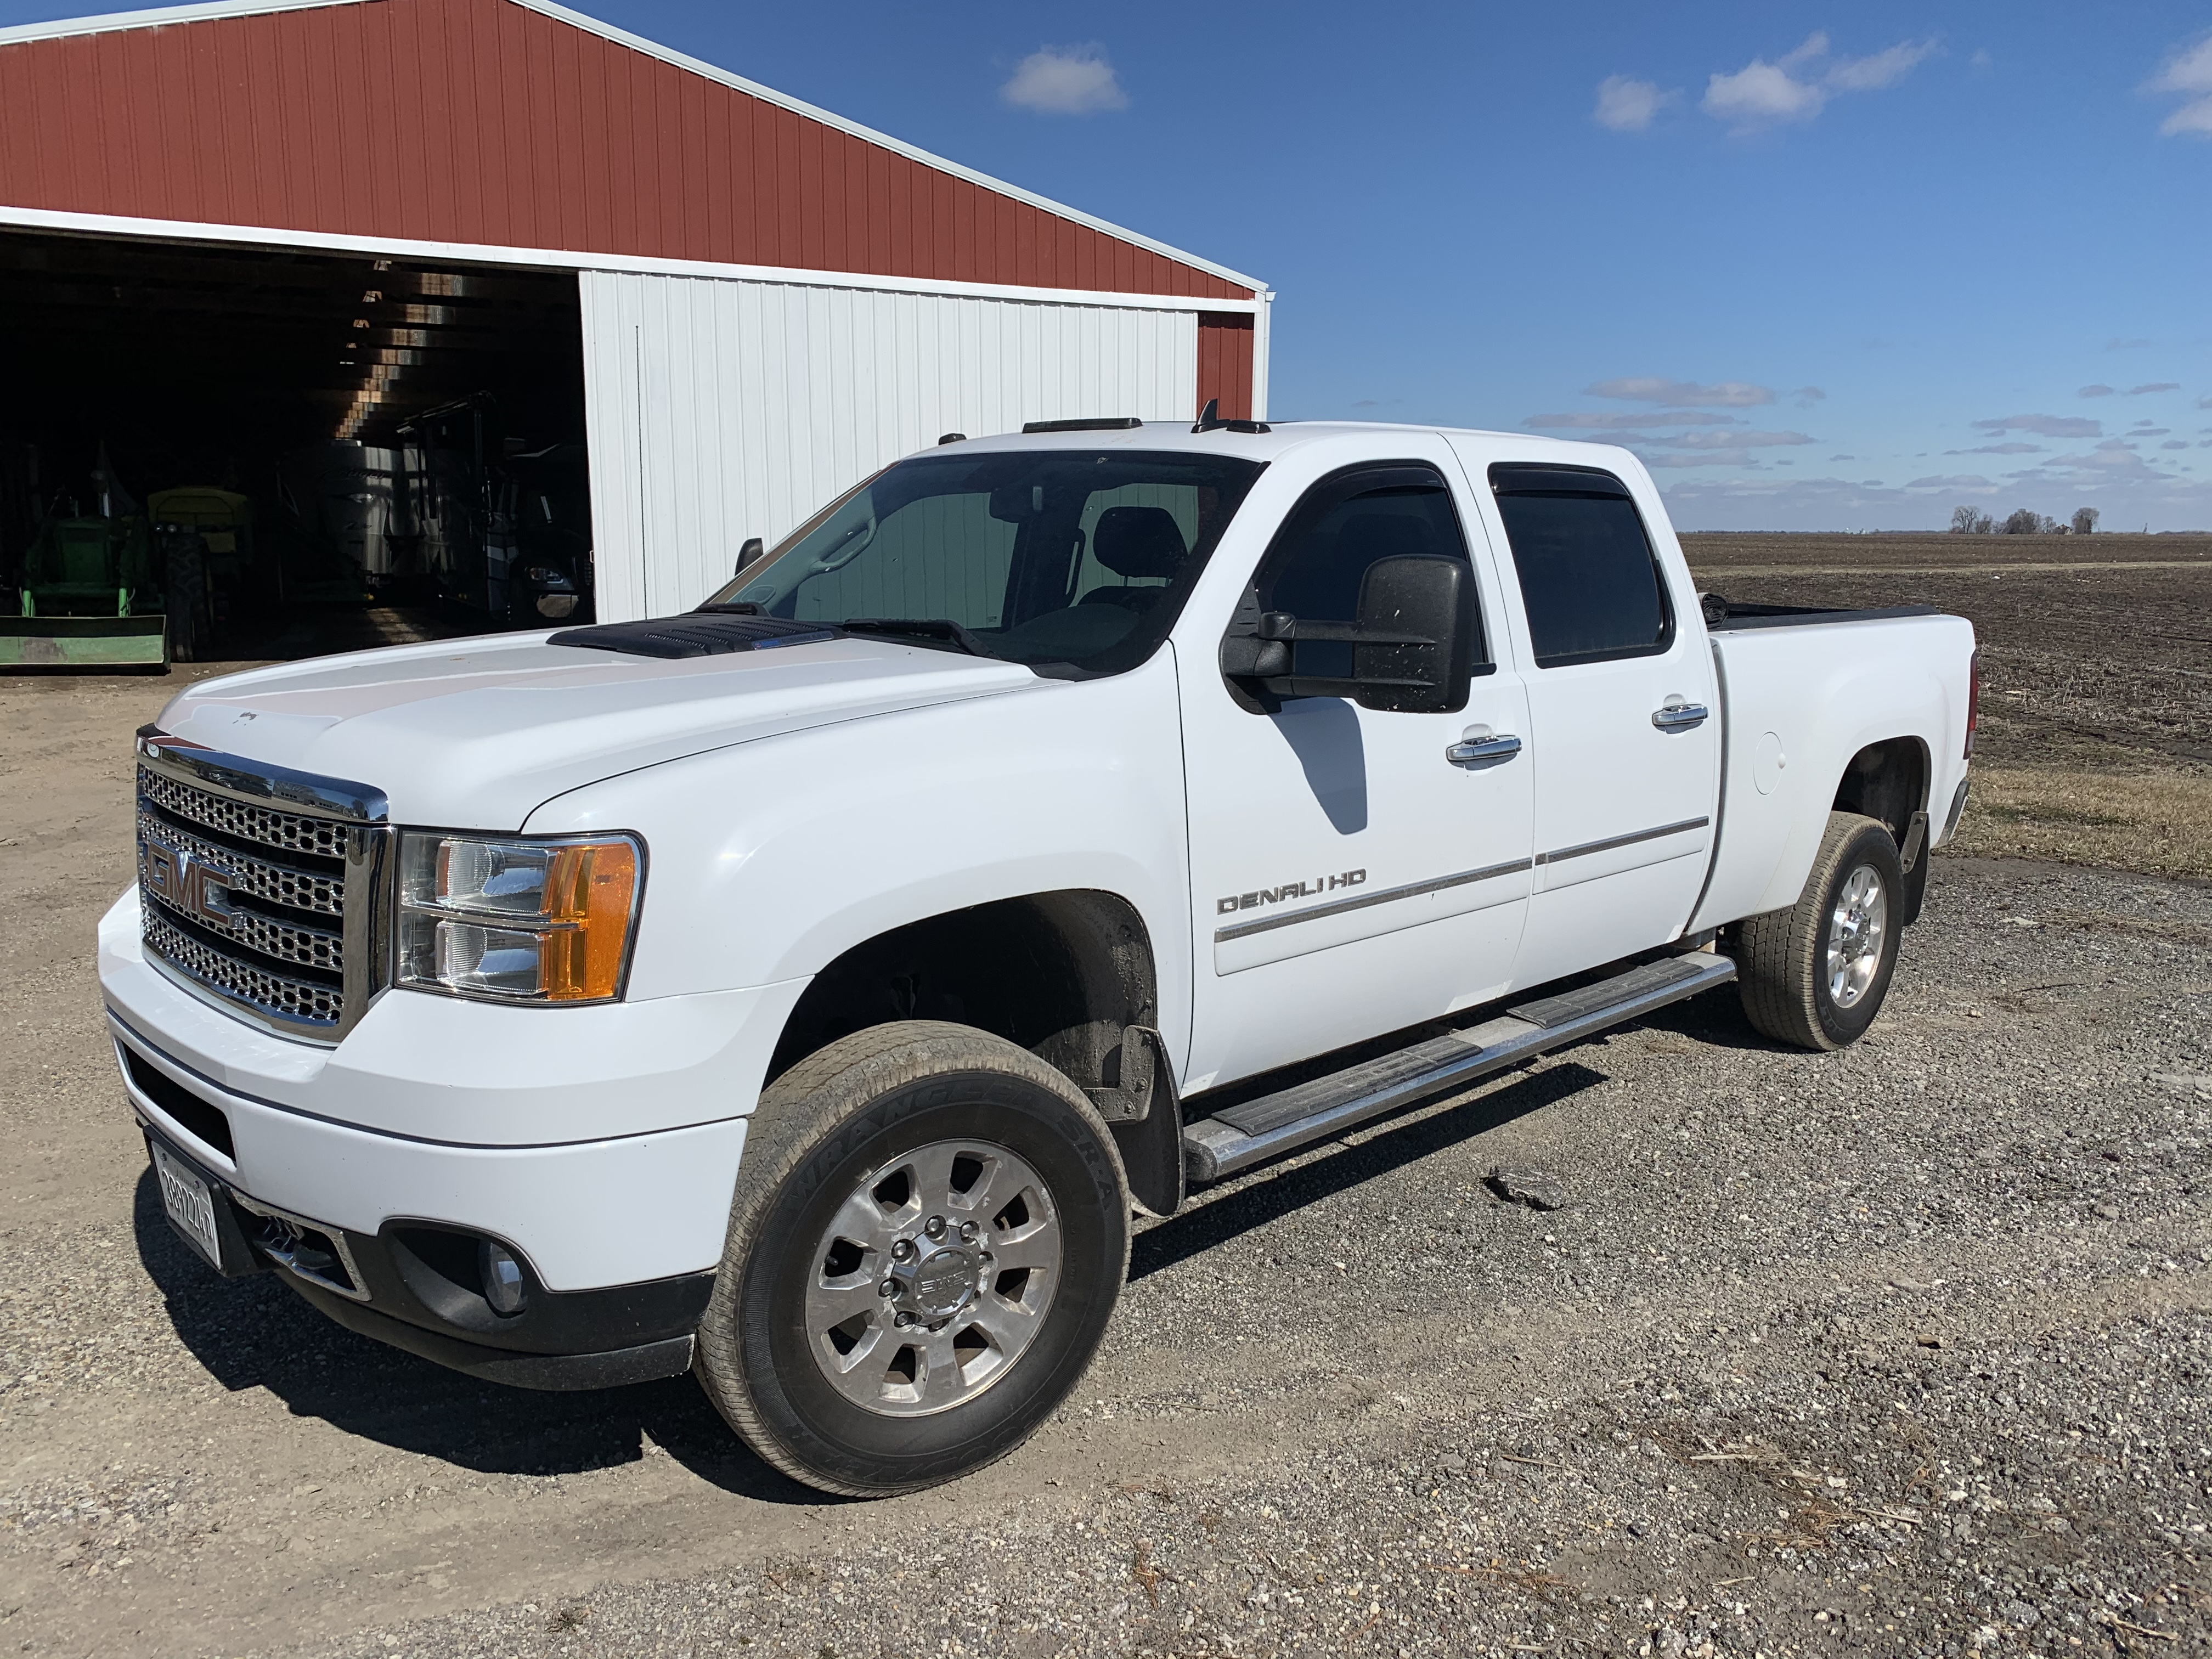 2013 GMC Denali 2500 HD Pickup 4x4 Duramax Diesel, Completely Deleted